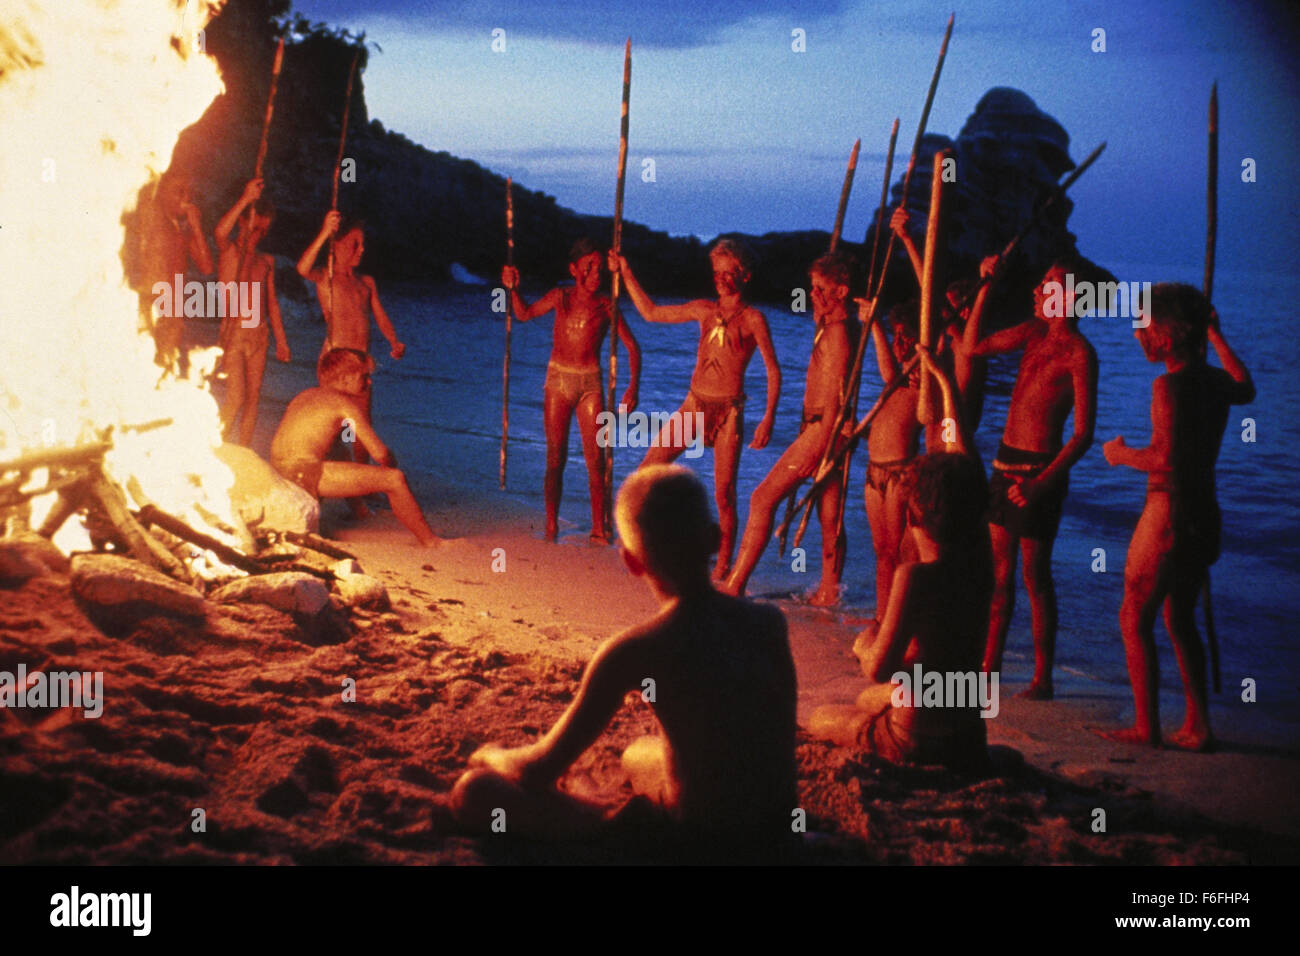 a comparison between the movie and novel version of lord of the flies Differences between lord of the flies book & movie william golding's lord of the flies book has a plenty of differences compared to harry hook's movie of lord of the flies  in the movie the boys are no grownups, the boys are not british and simon does not meet the lord of the flies.